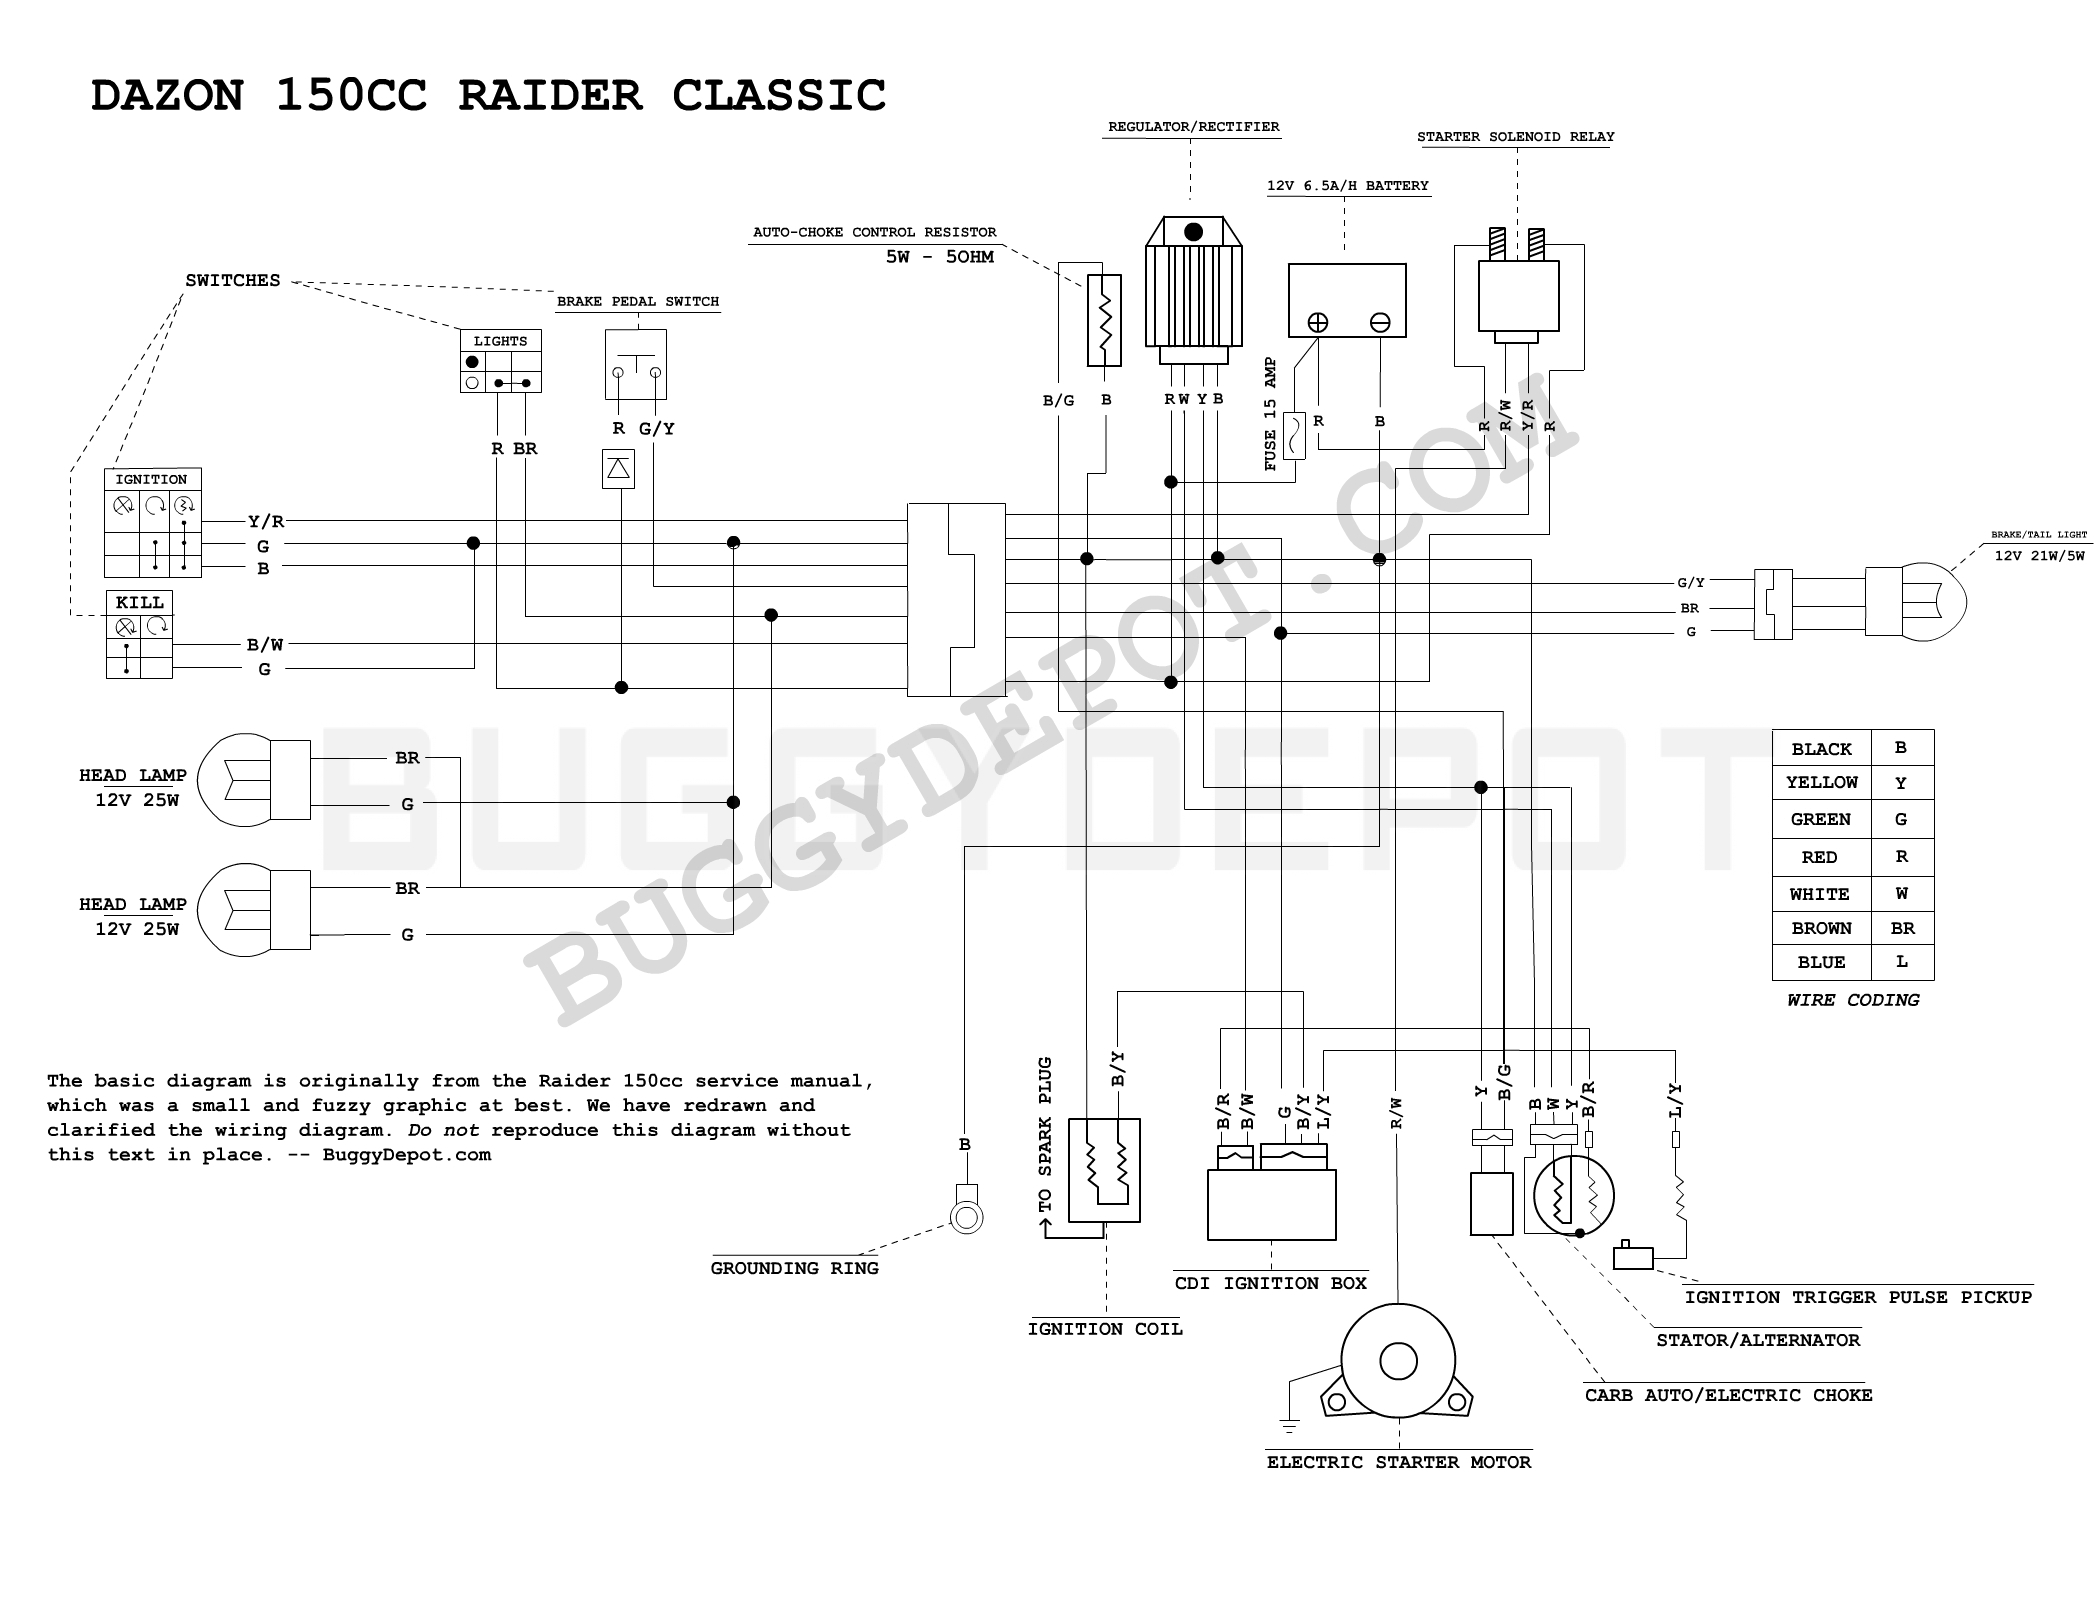 article_33_1278205207 gy6 150cc ignition troubleshooting guide no spark? buggy depot kymco super 8 wiring diagram at fashall.co